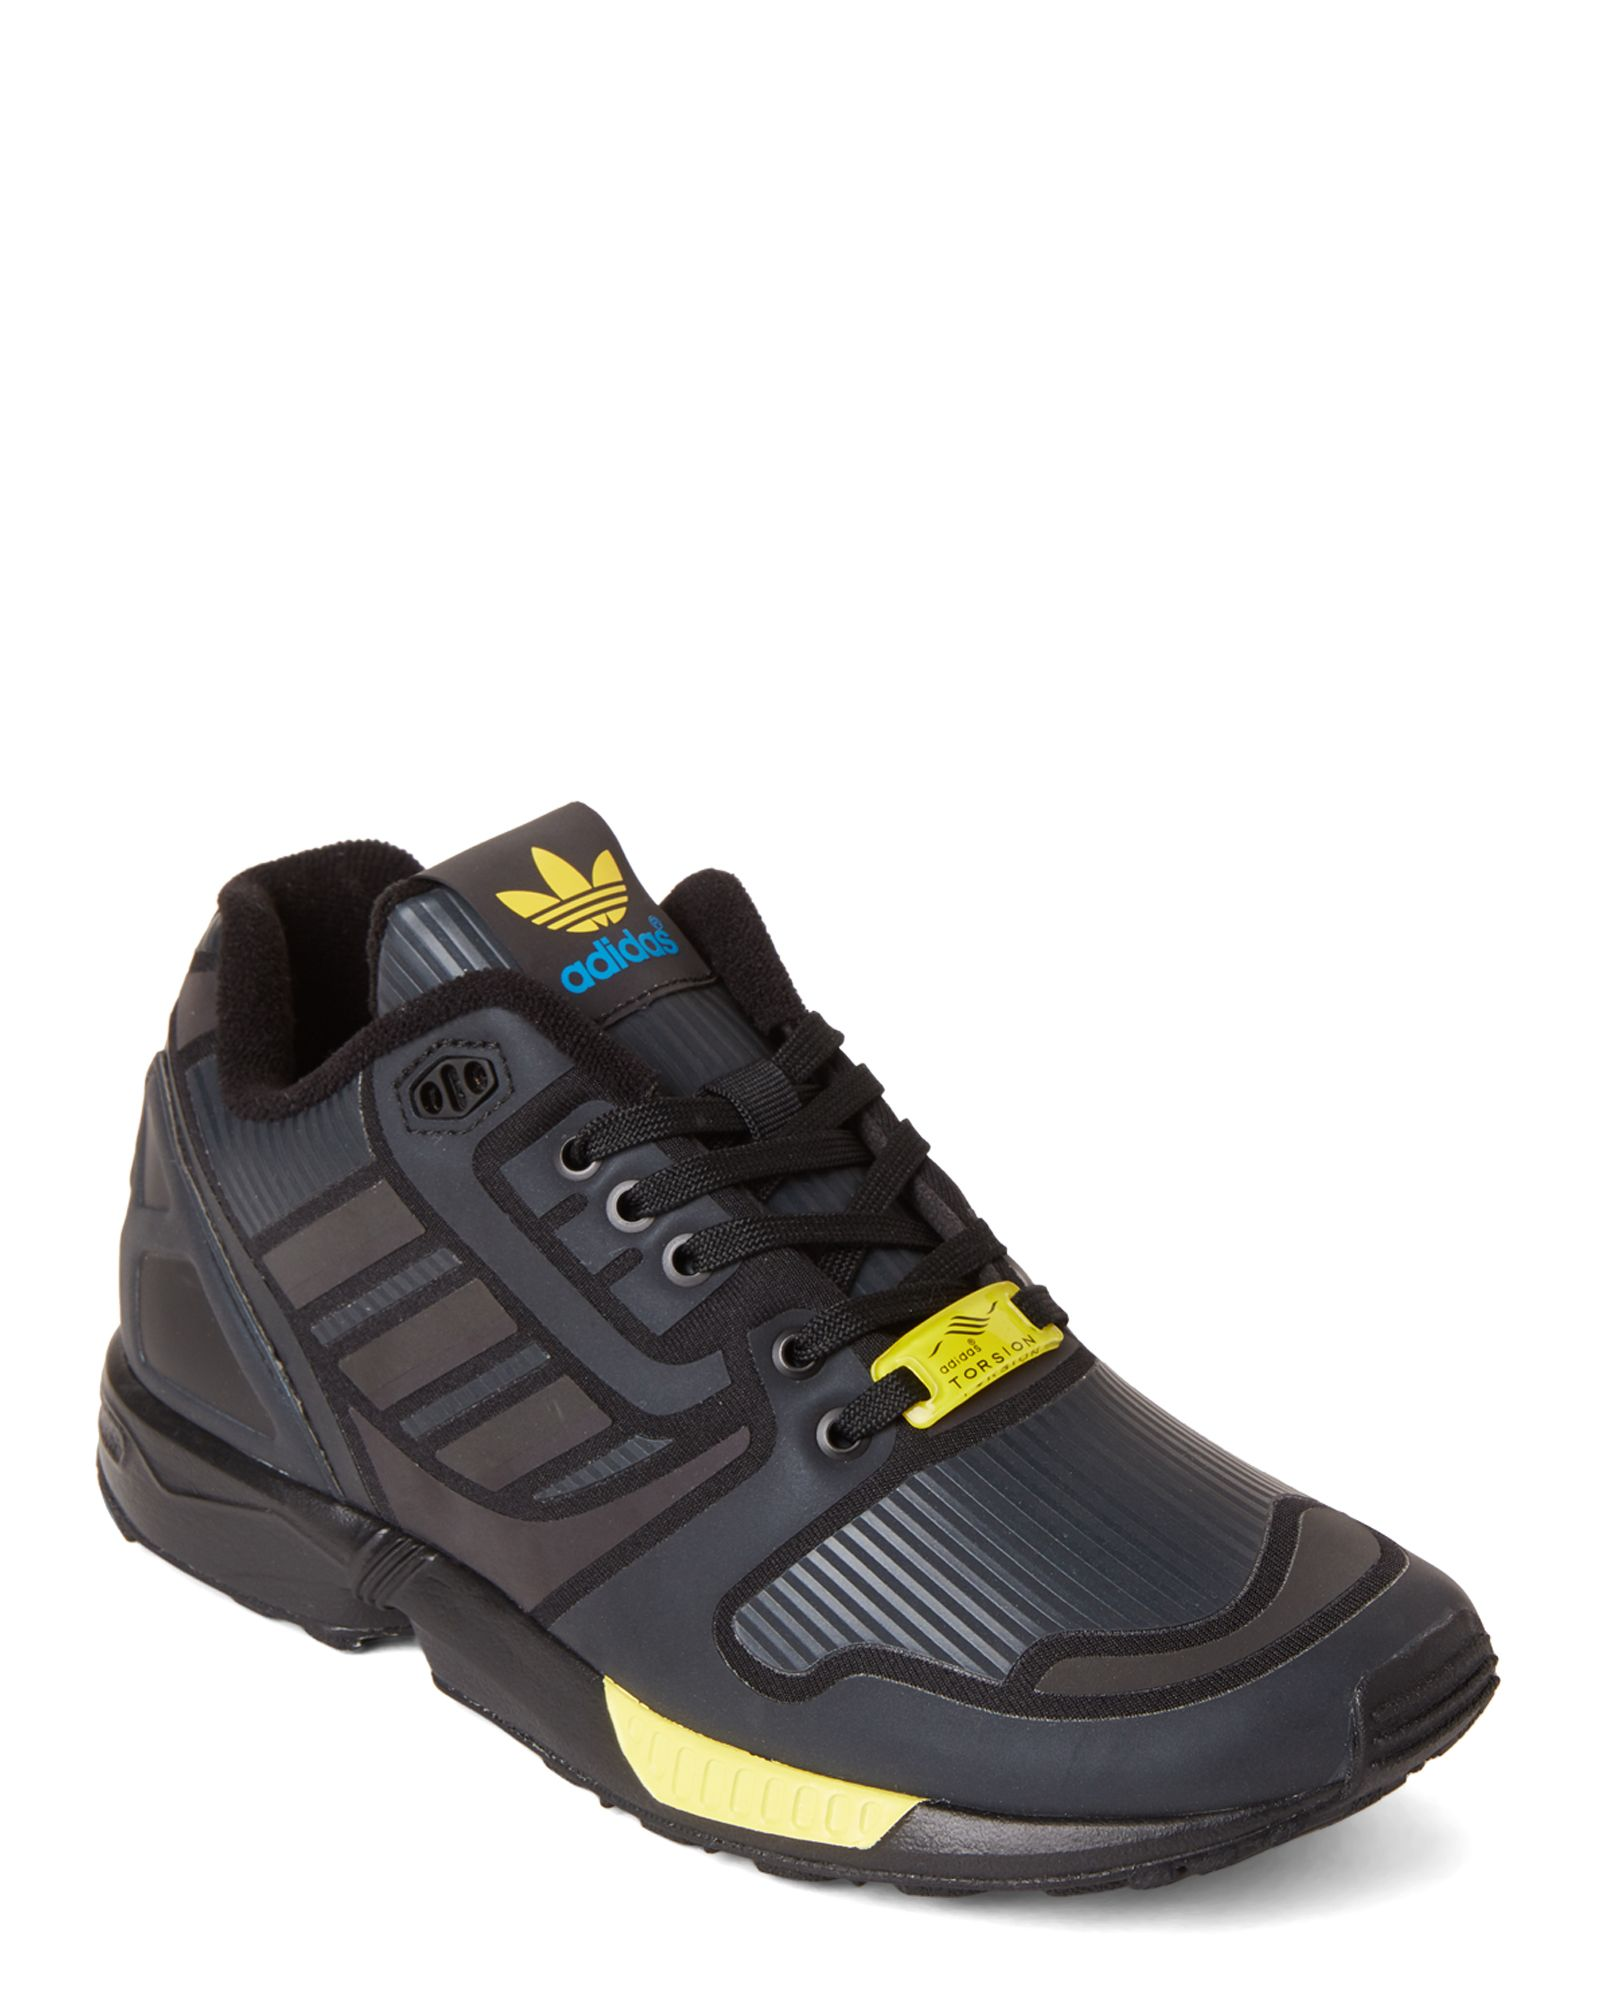 b42a359ce0a0a Adidas (Kids Boys) Core Black ZX Flux Reveal Low-Top Sneakers